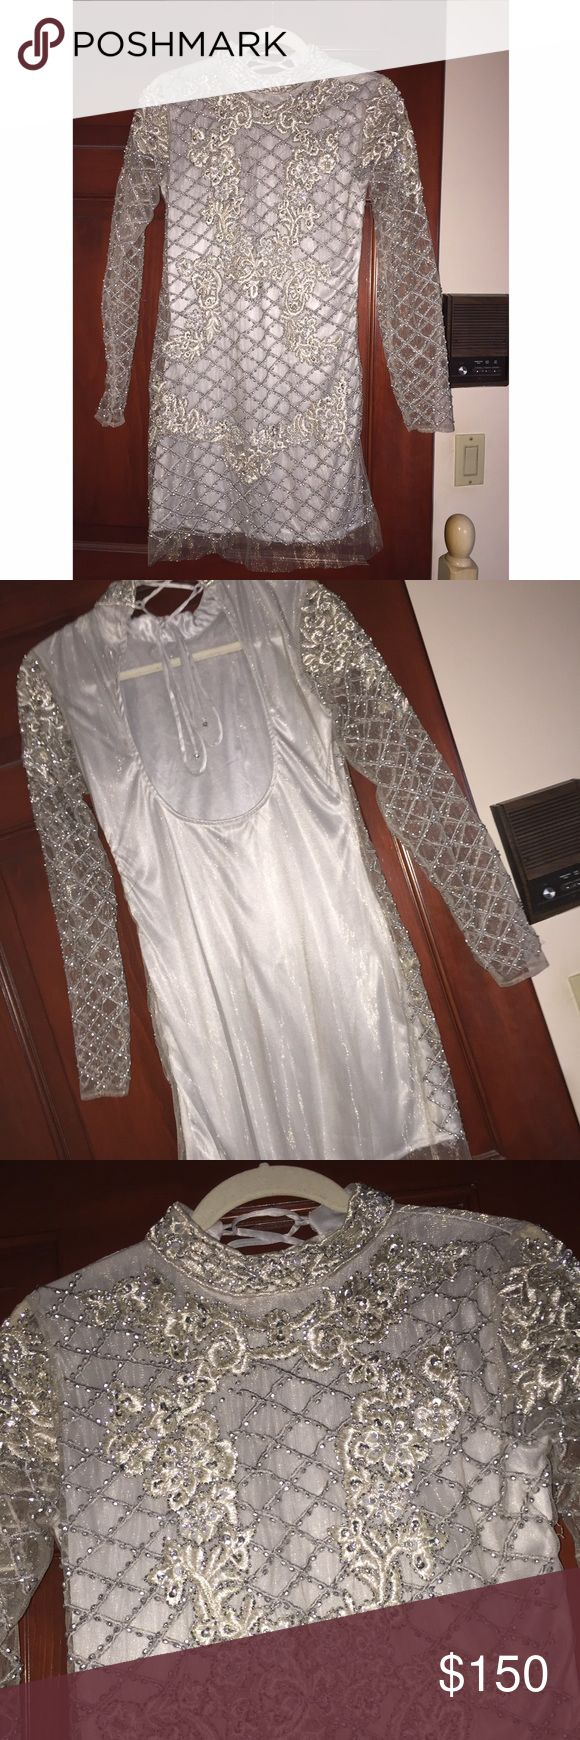 Silver long sleeve formal gown Absolutely STUNNING dress. I've never gotten so many compliments. Silver/grey color, bead work is gorgeous. Criss cross neck tie. Open back. Size 6. Warn once, no flaws. Dresses Long Sleeve